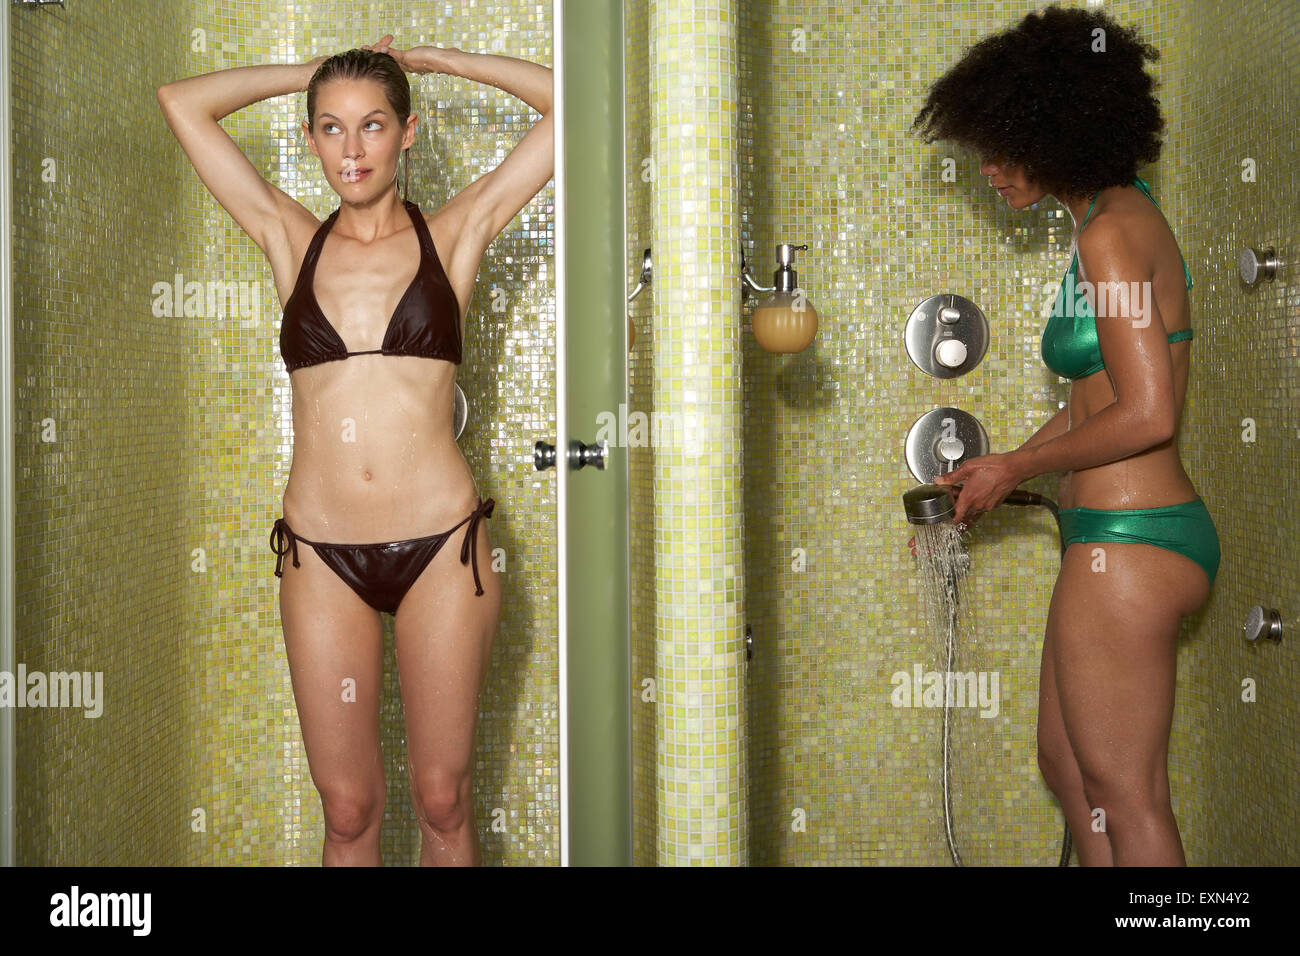 Two women standing in shower cabinets Stock Photo